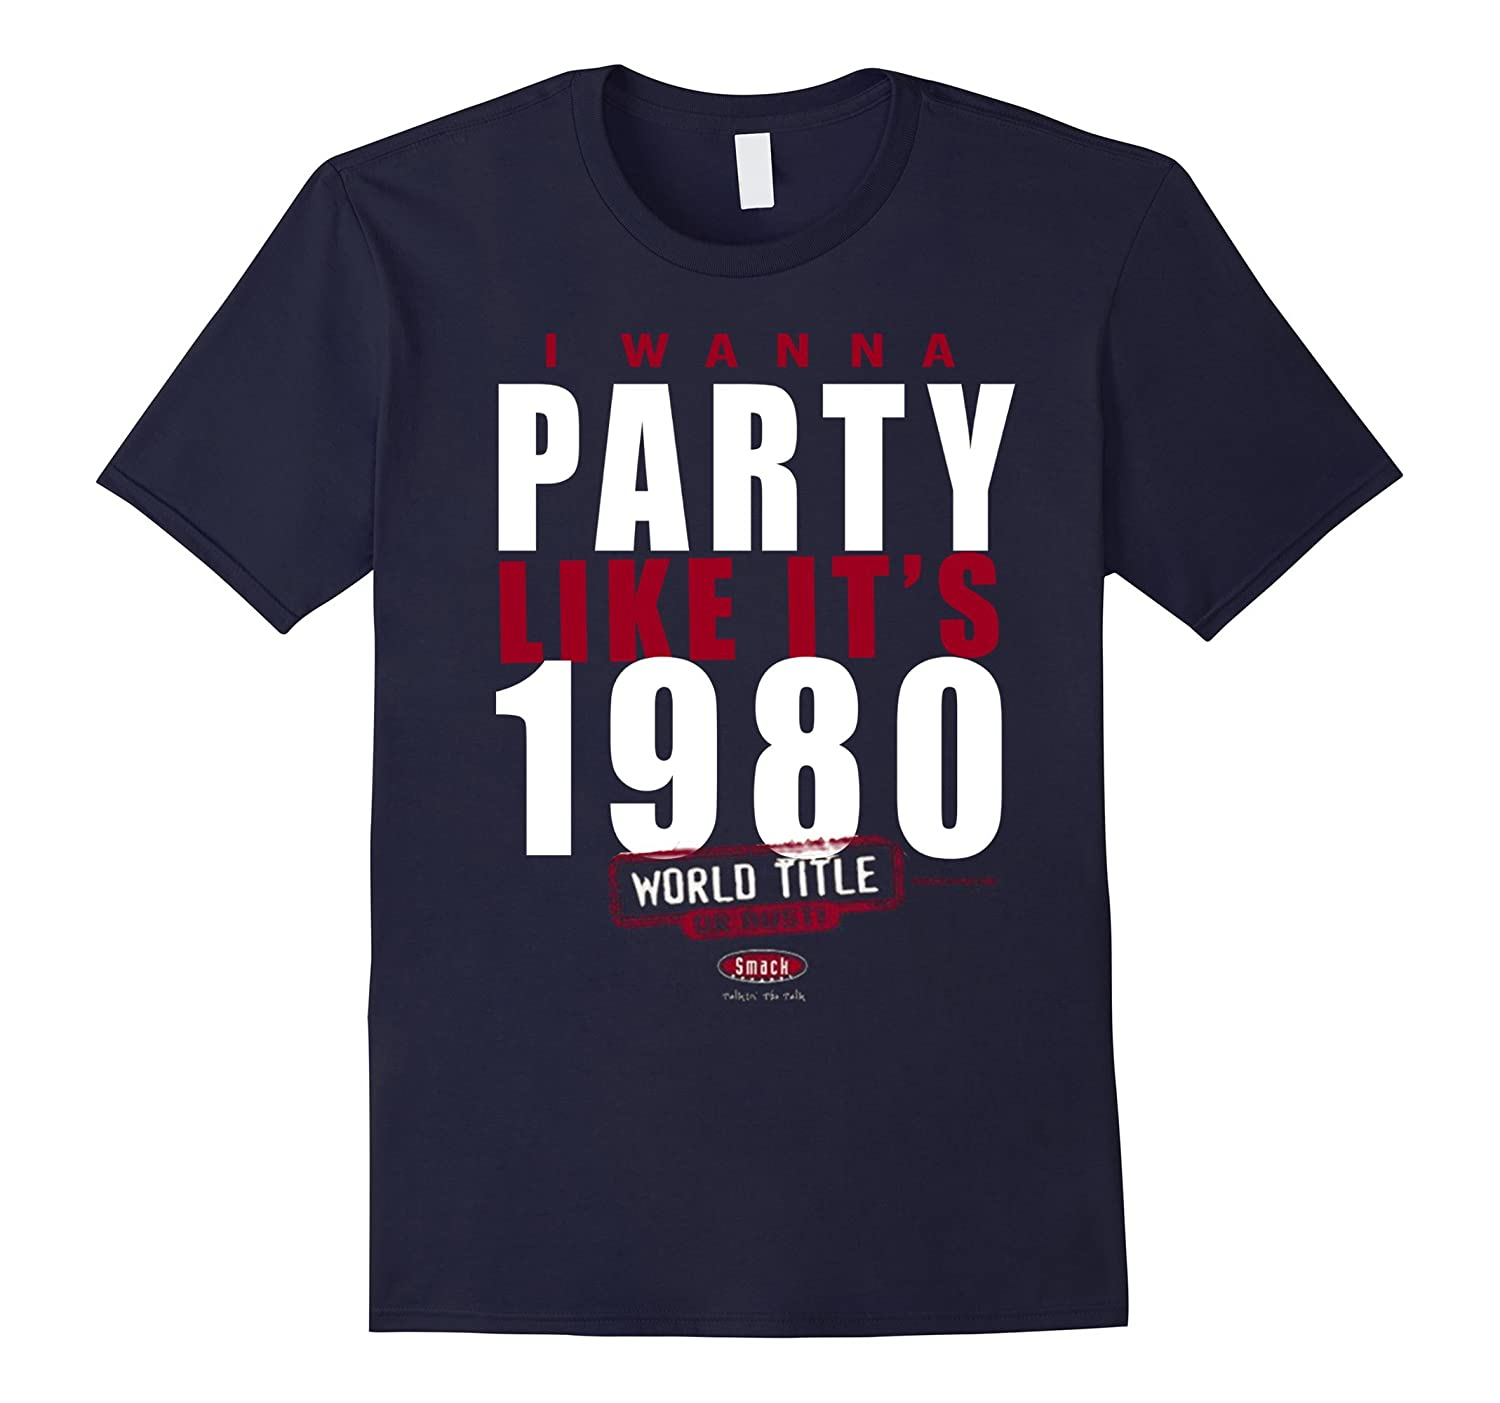 I Wanna Party Like It's 1908 Royal Blue T-Shirt-CL